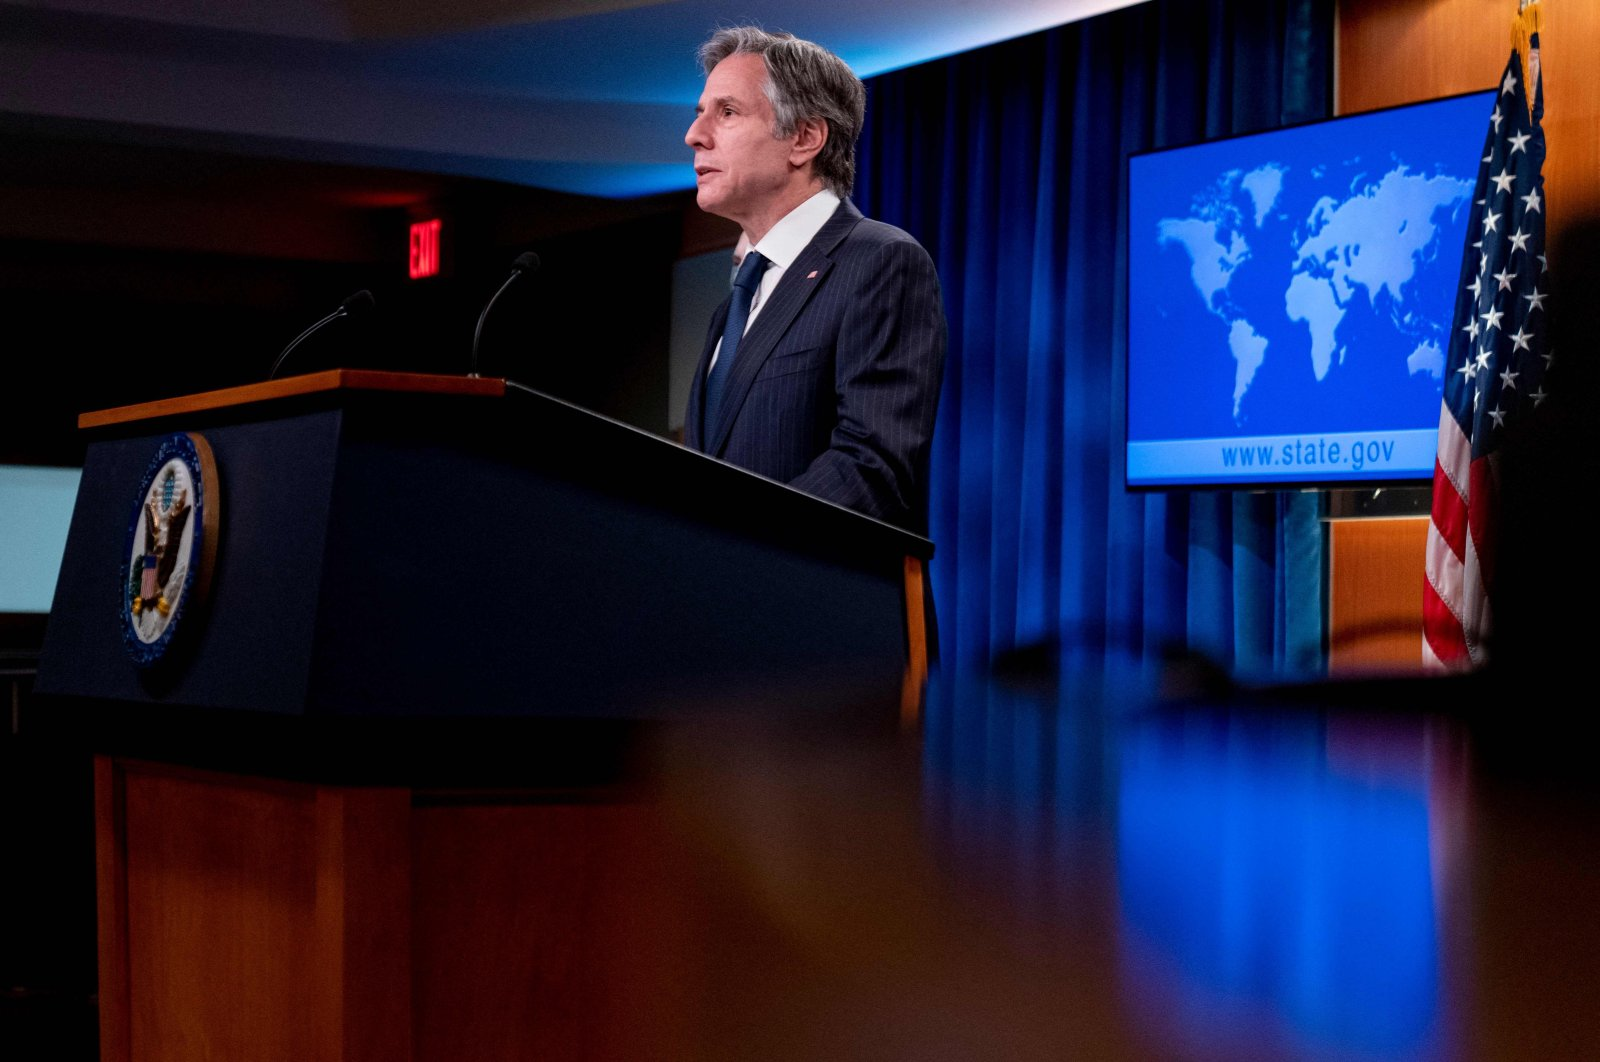 U.S. Secretary of State Antony Blinken speaks at a news conference to announce the annual International Religious Freedom Report at the State Department in Washington, D.C., U.S., on May 12, 2021. (AFP Photo)